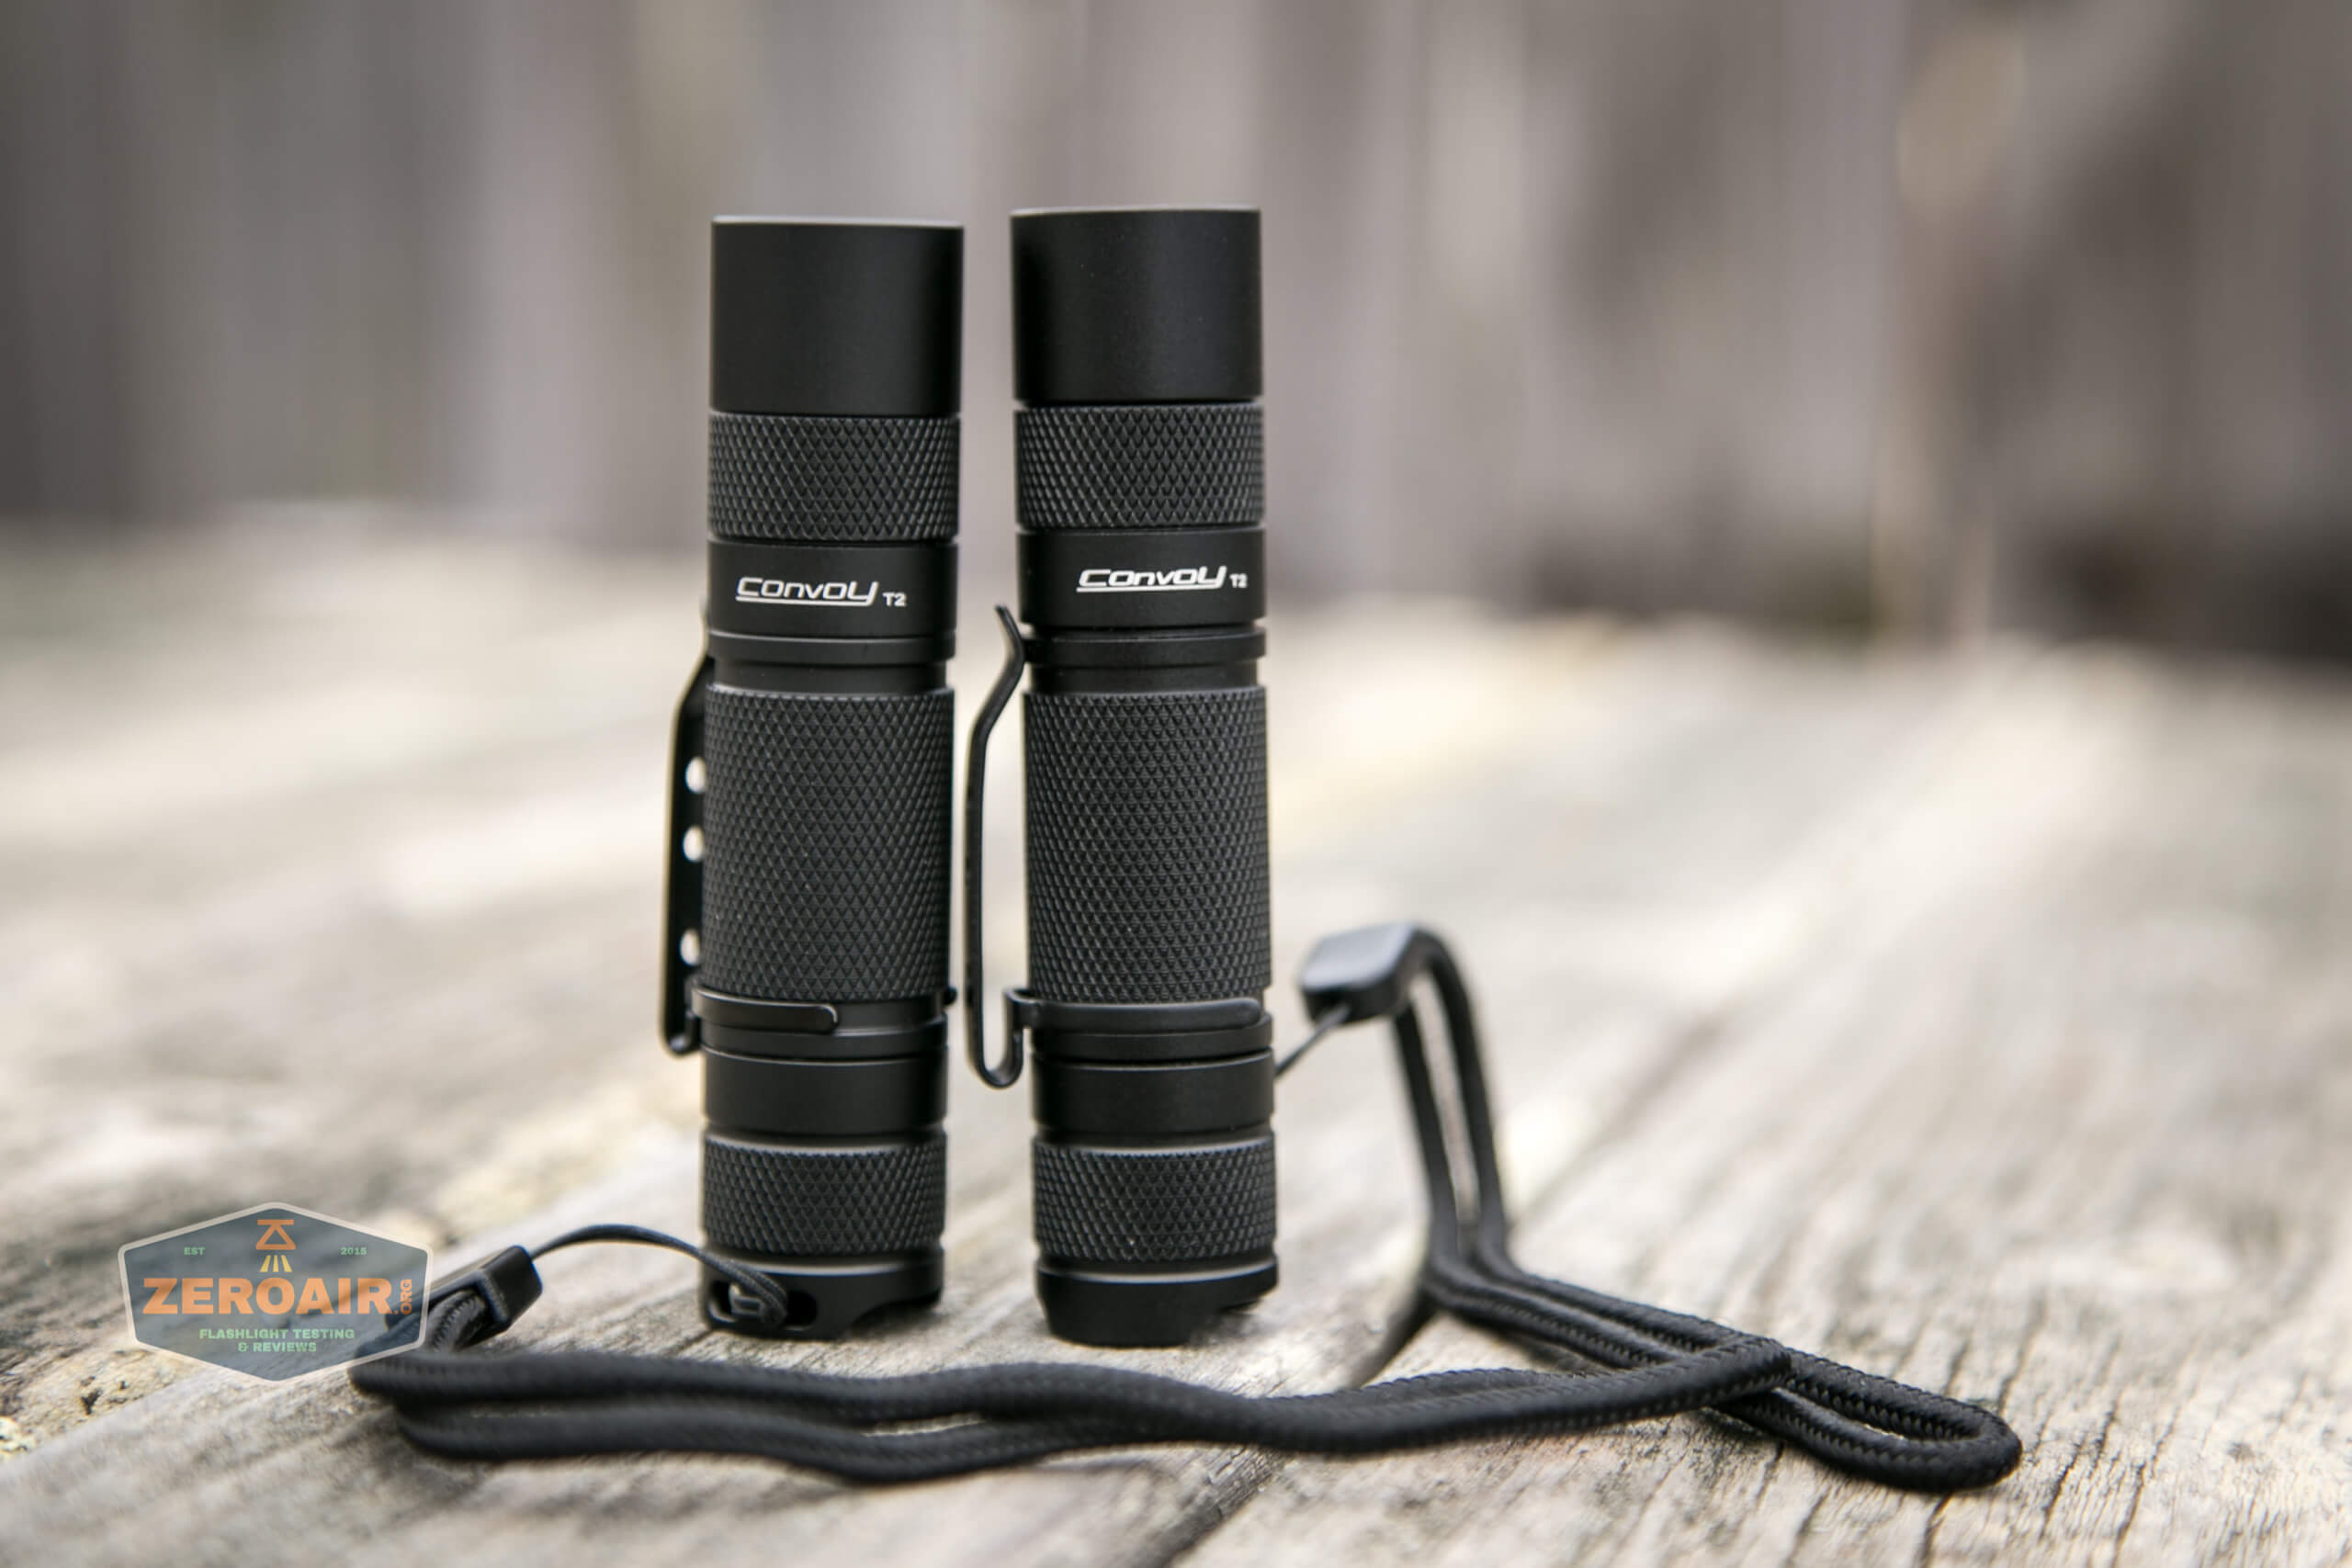 convoy t2 updated 14500/AA flashlight beside convoy t2 original